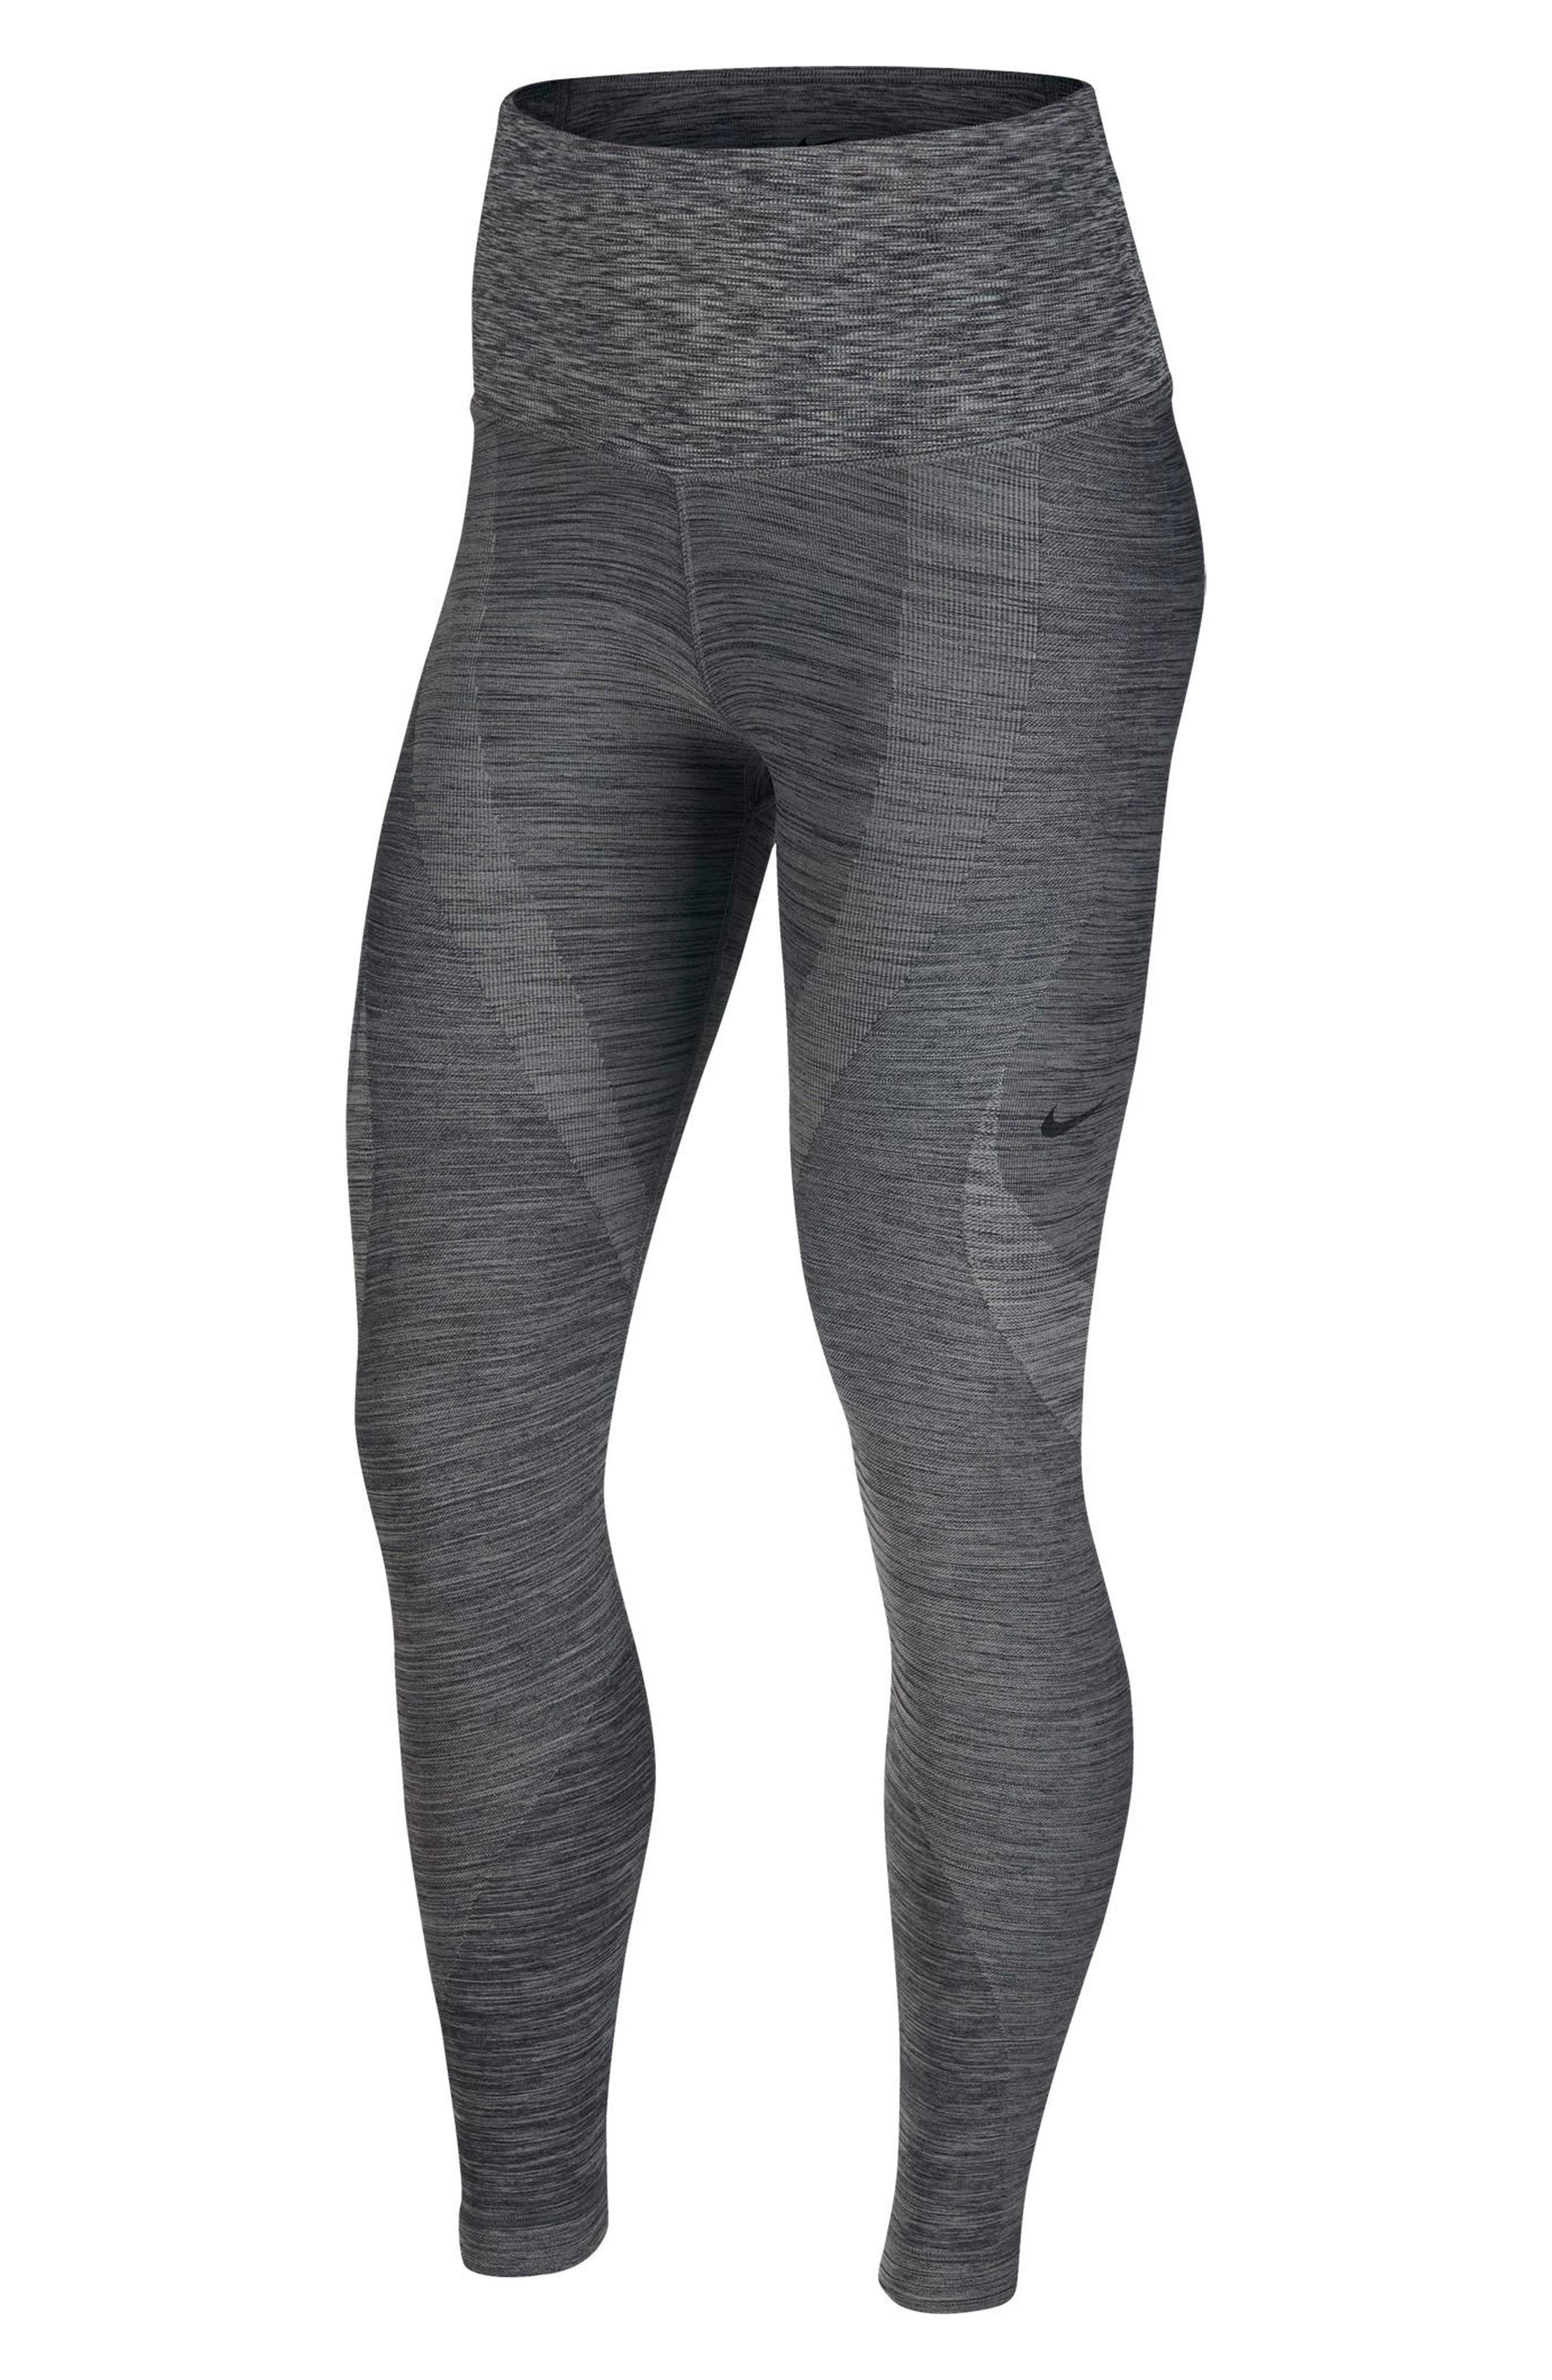 Power Sculpt Training Tights,                             Alternate thumbnail 7, color,